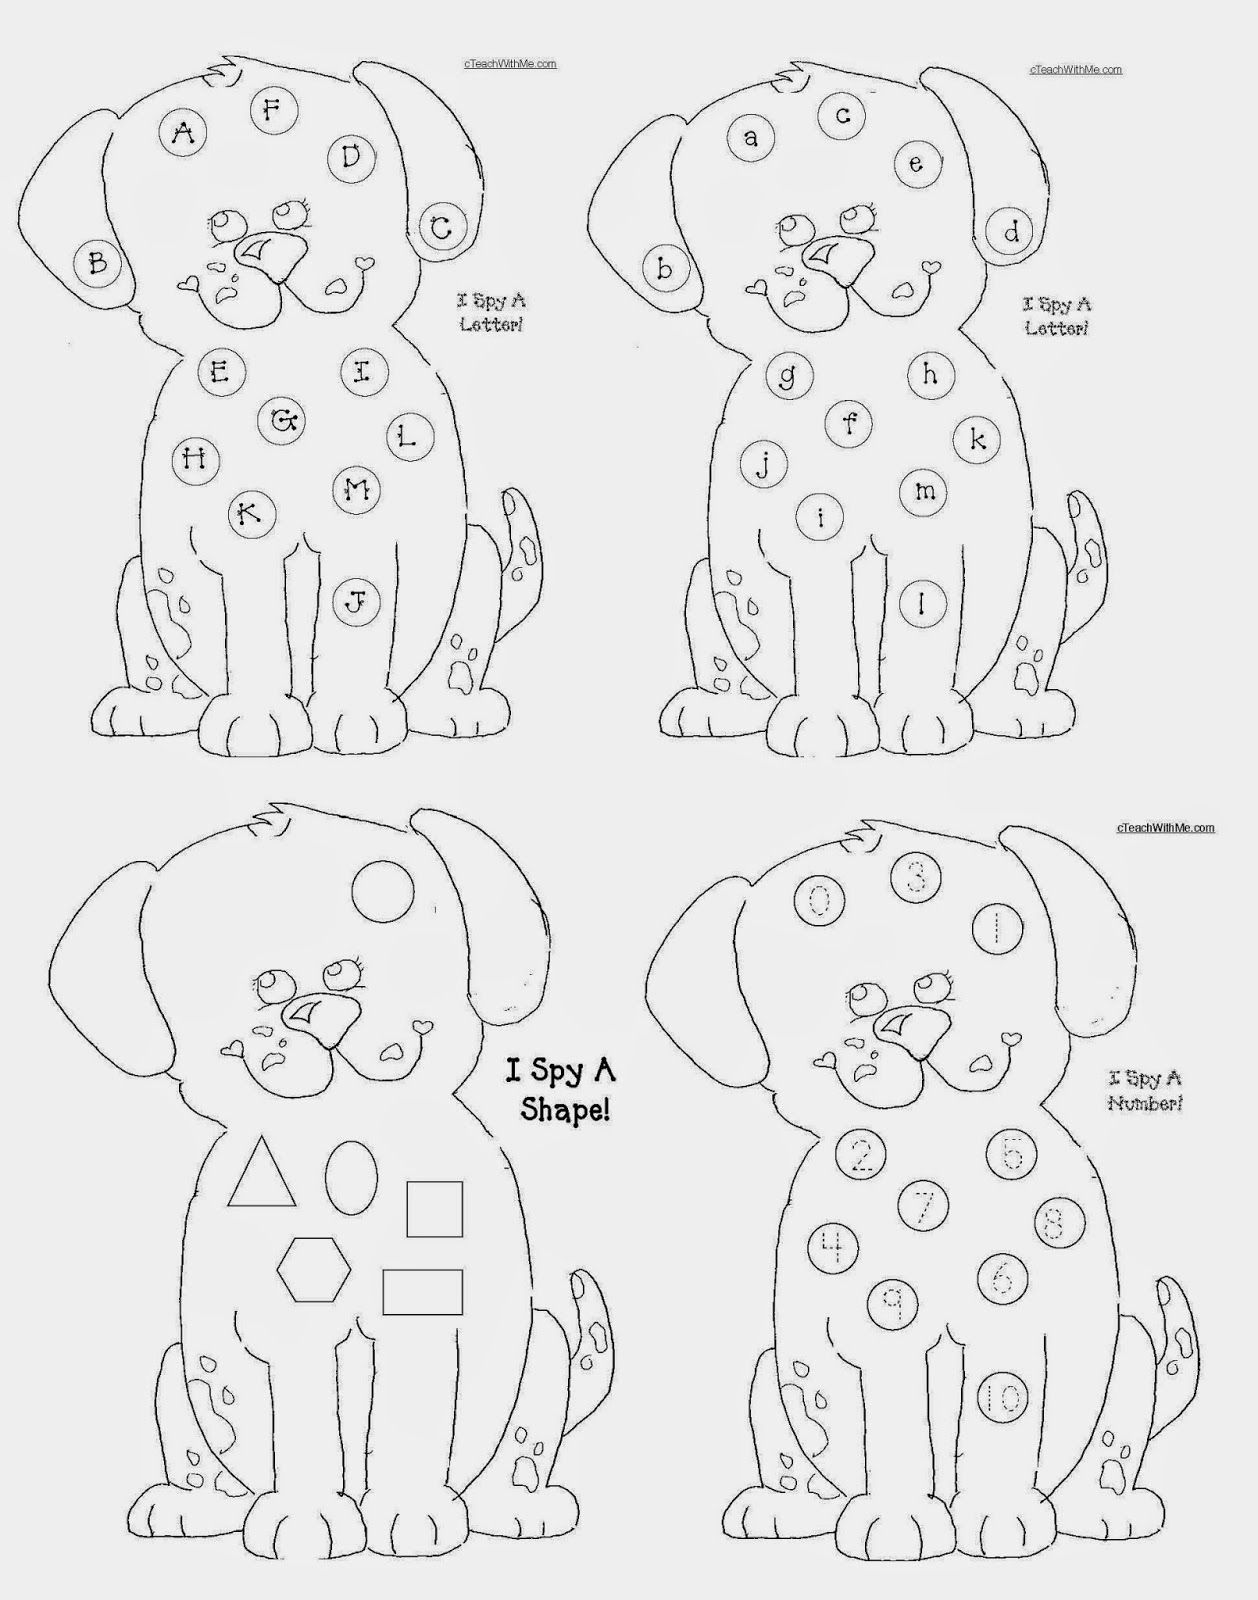 Common Core Fire Safety Puppy Packet